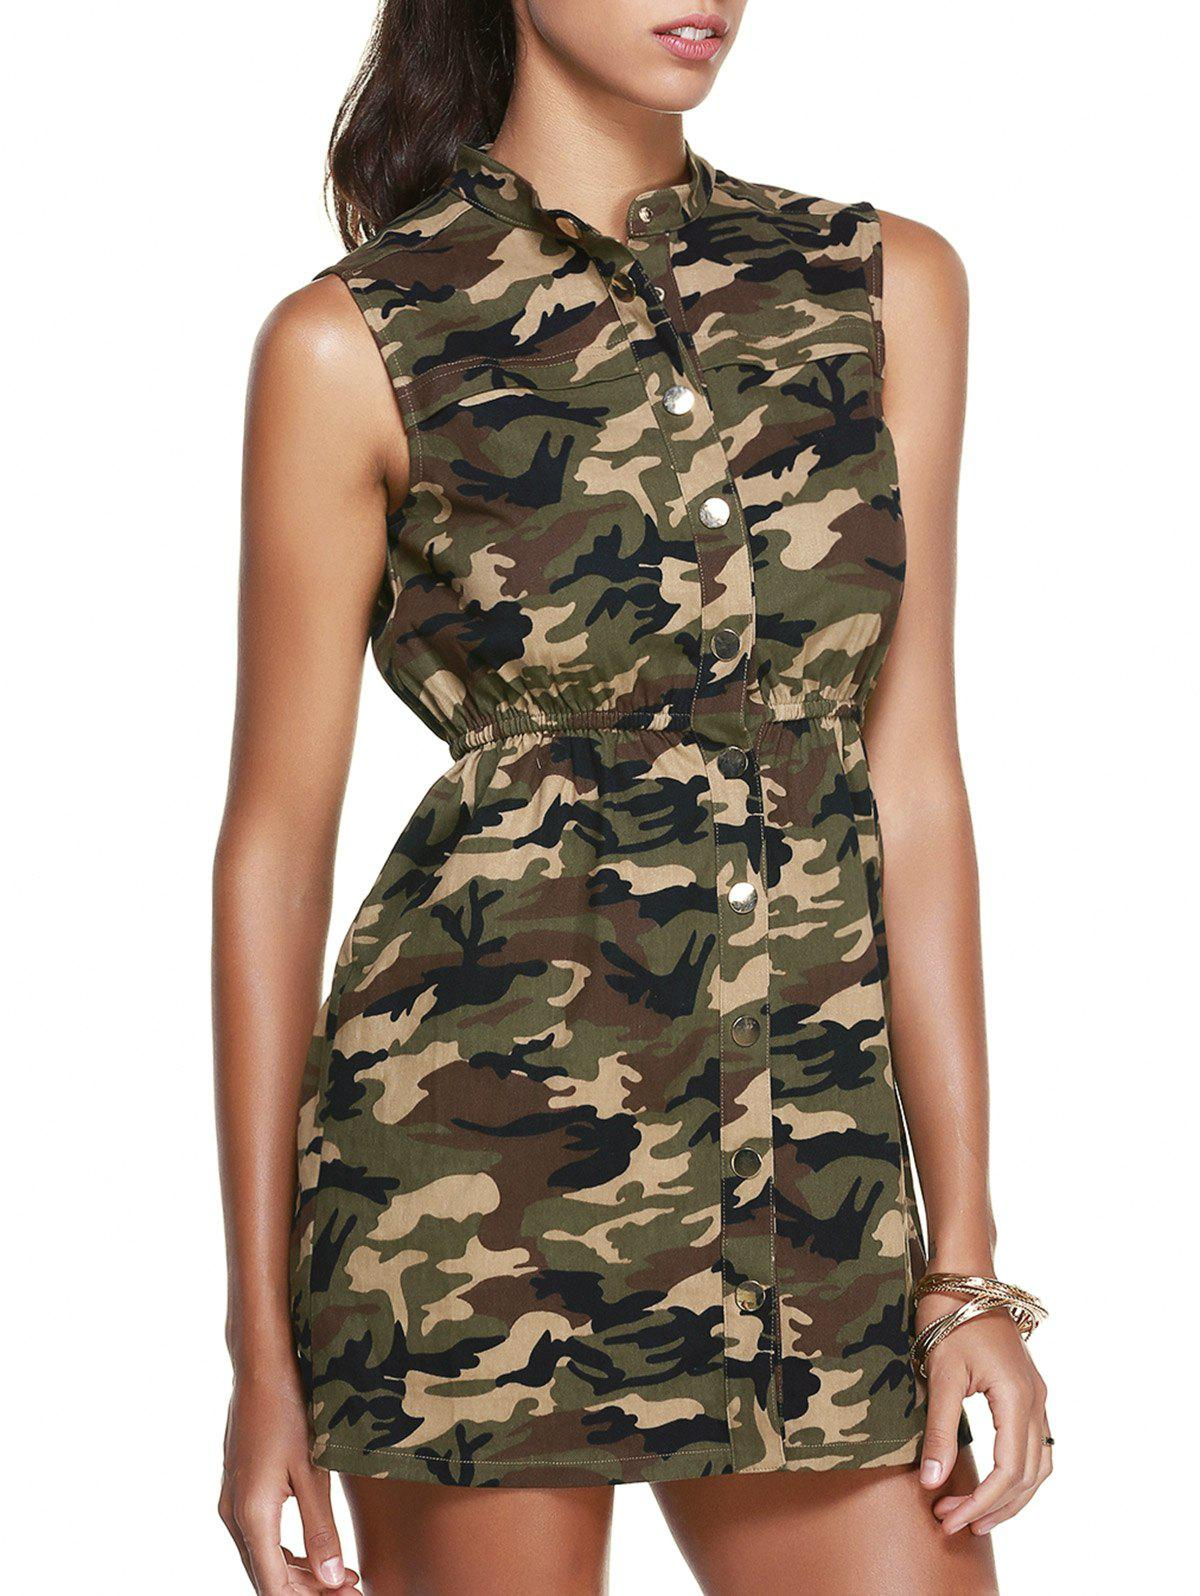 Stand Collar Sleeveless Camo Shirt Dress DRESSFO